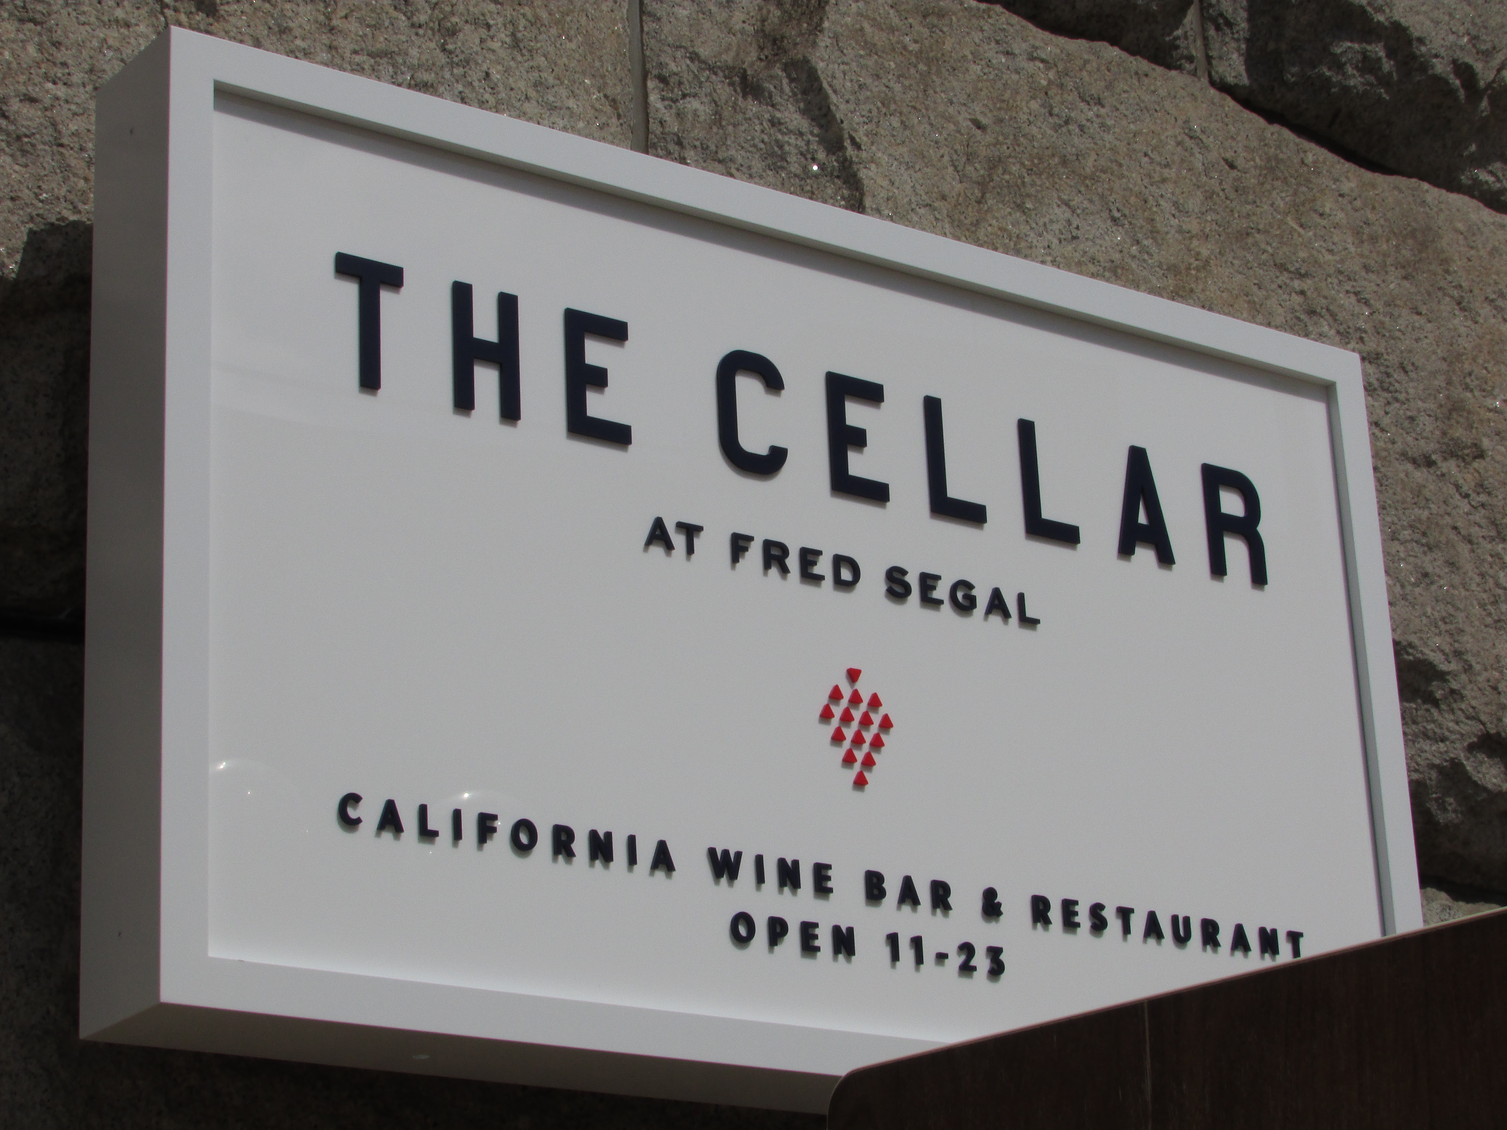 THE CELLAR AT FRED SEGAL